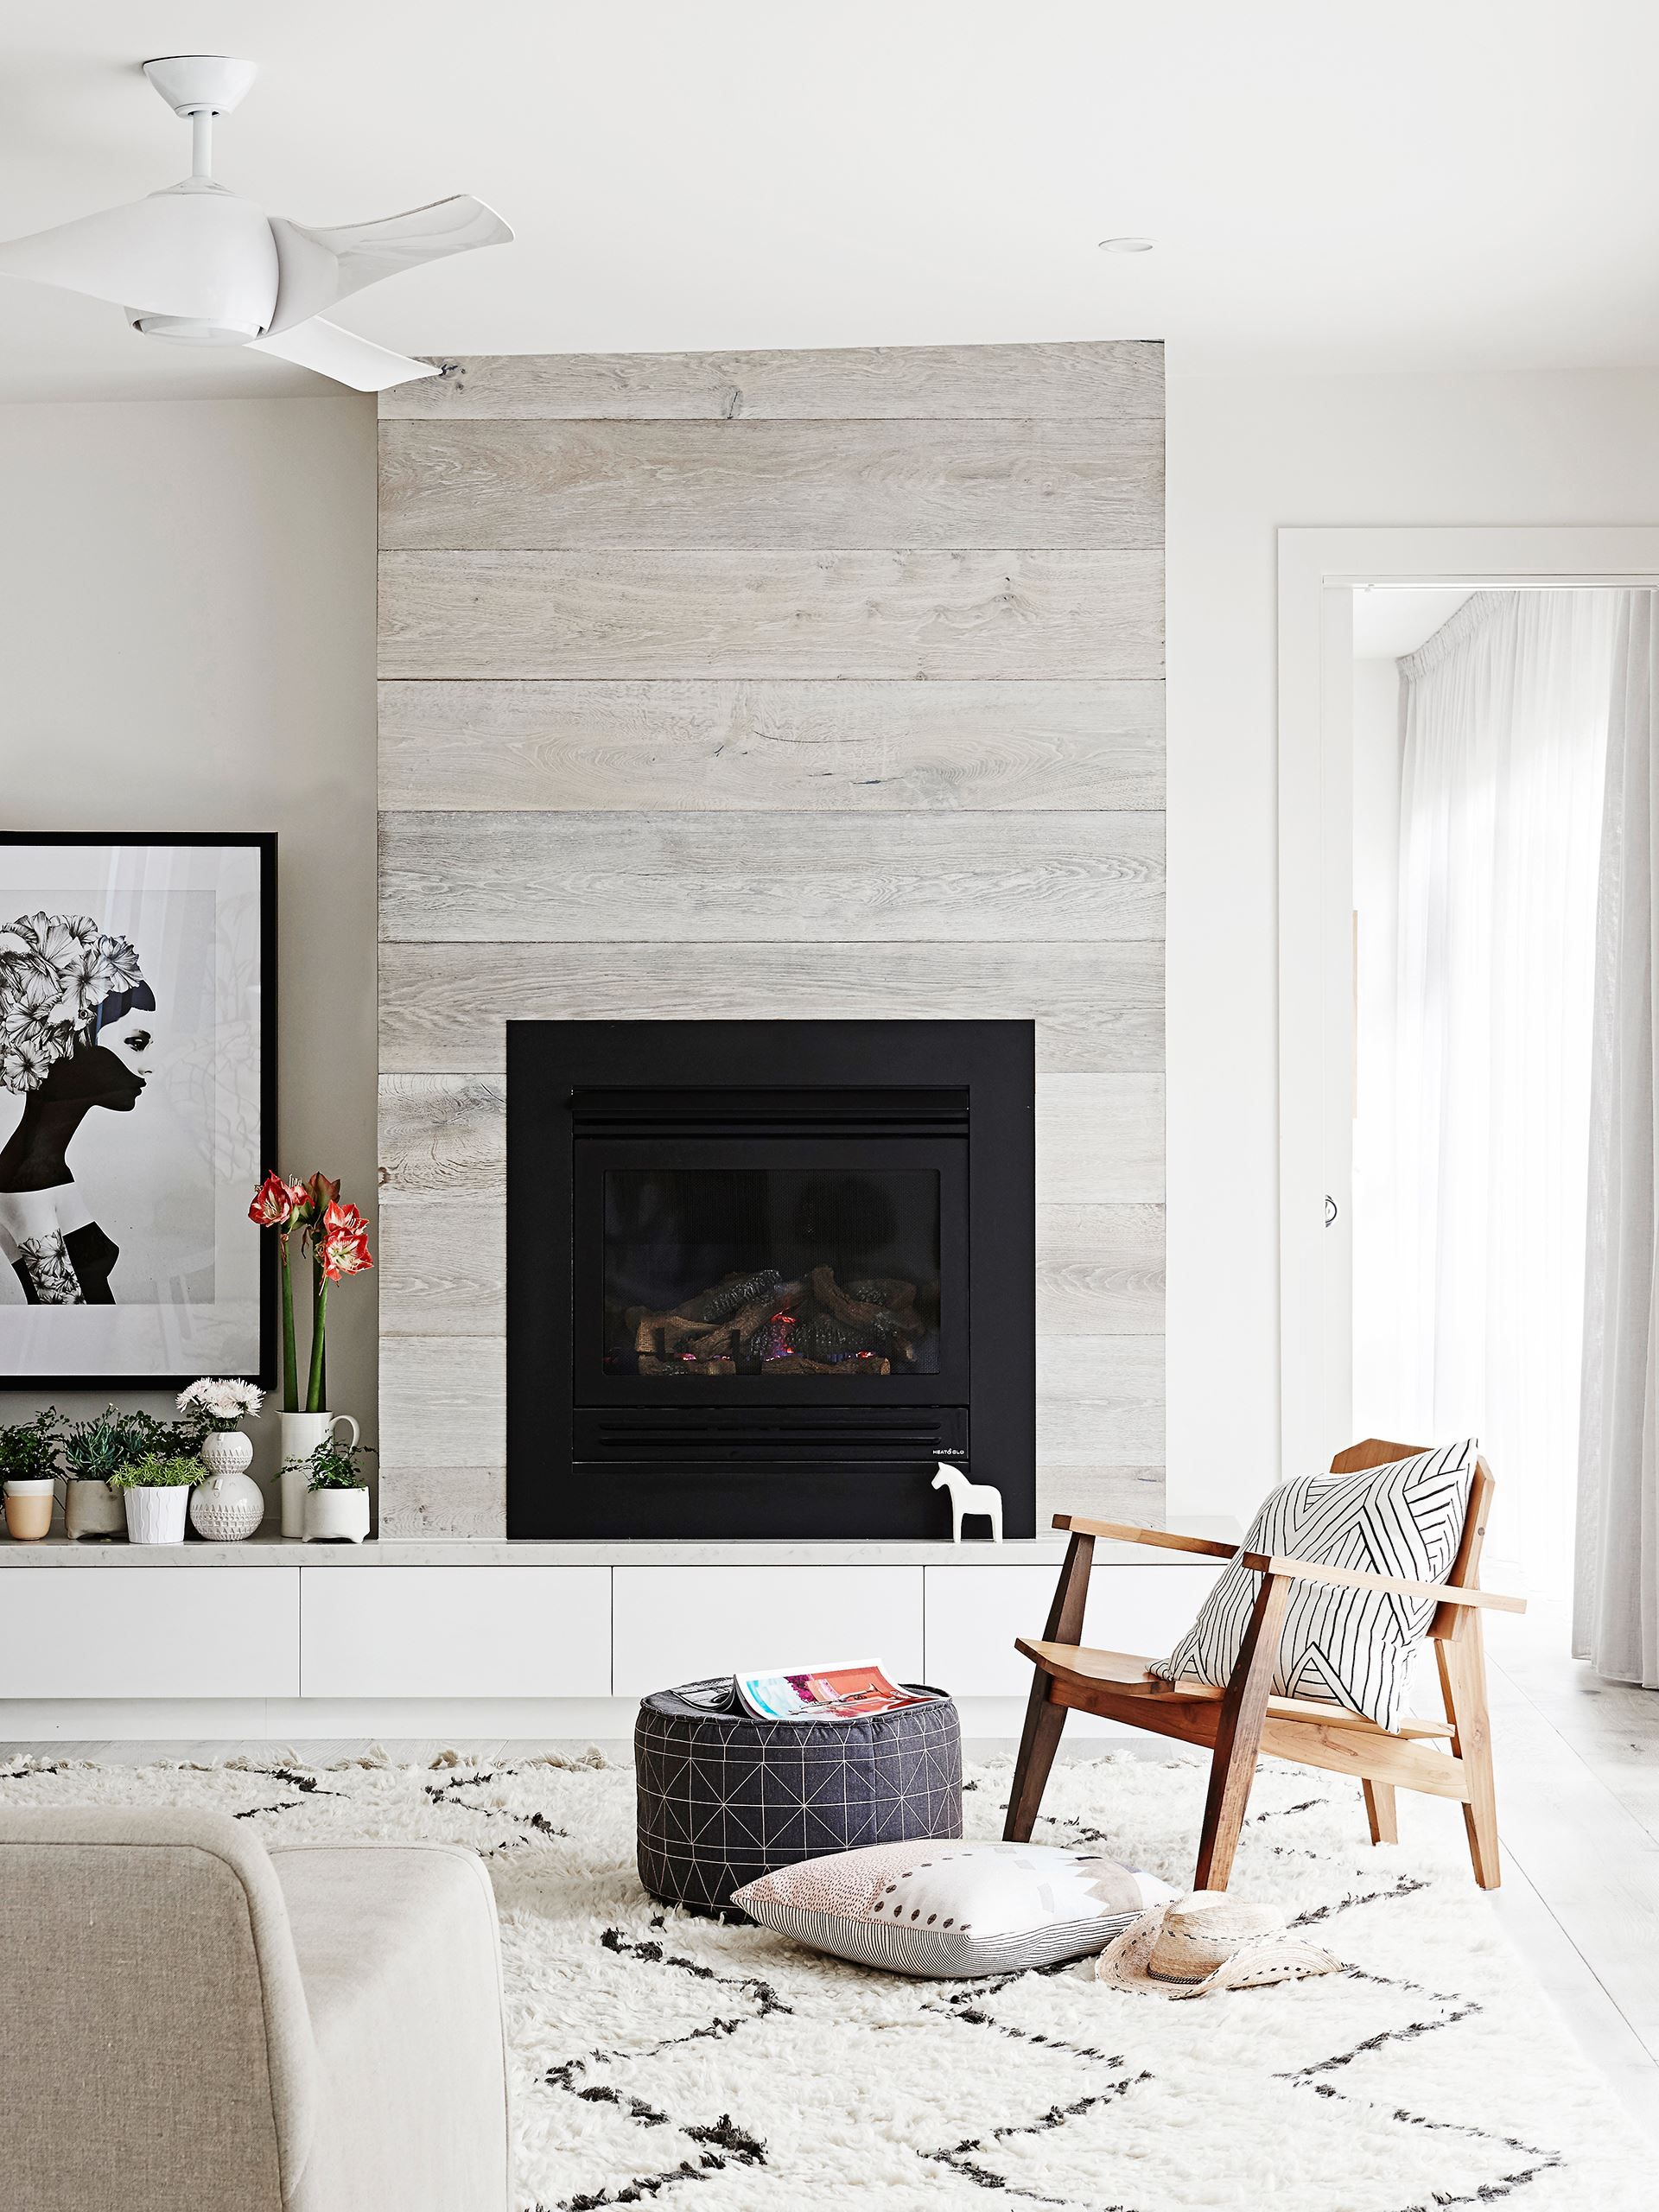 101 Reclaimed Wood Fireplace Surround Ideas - decoratoo